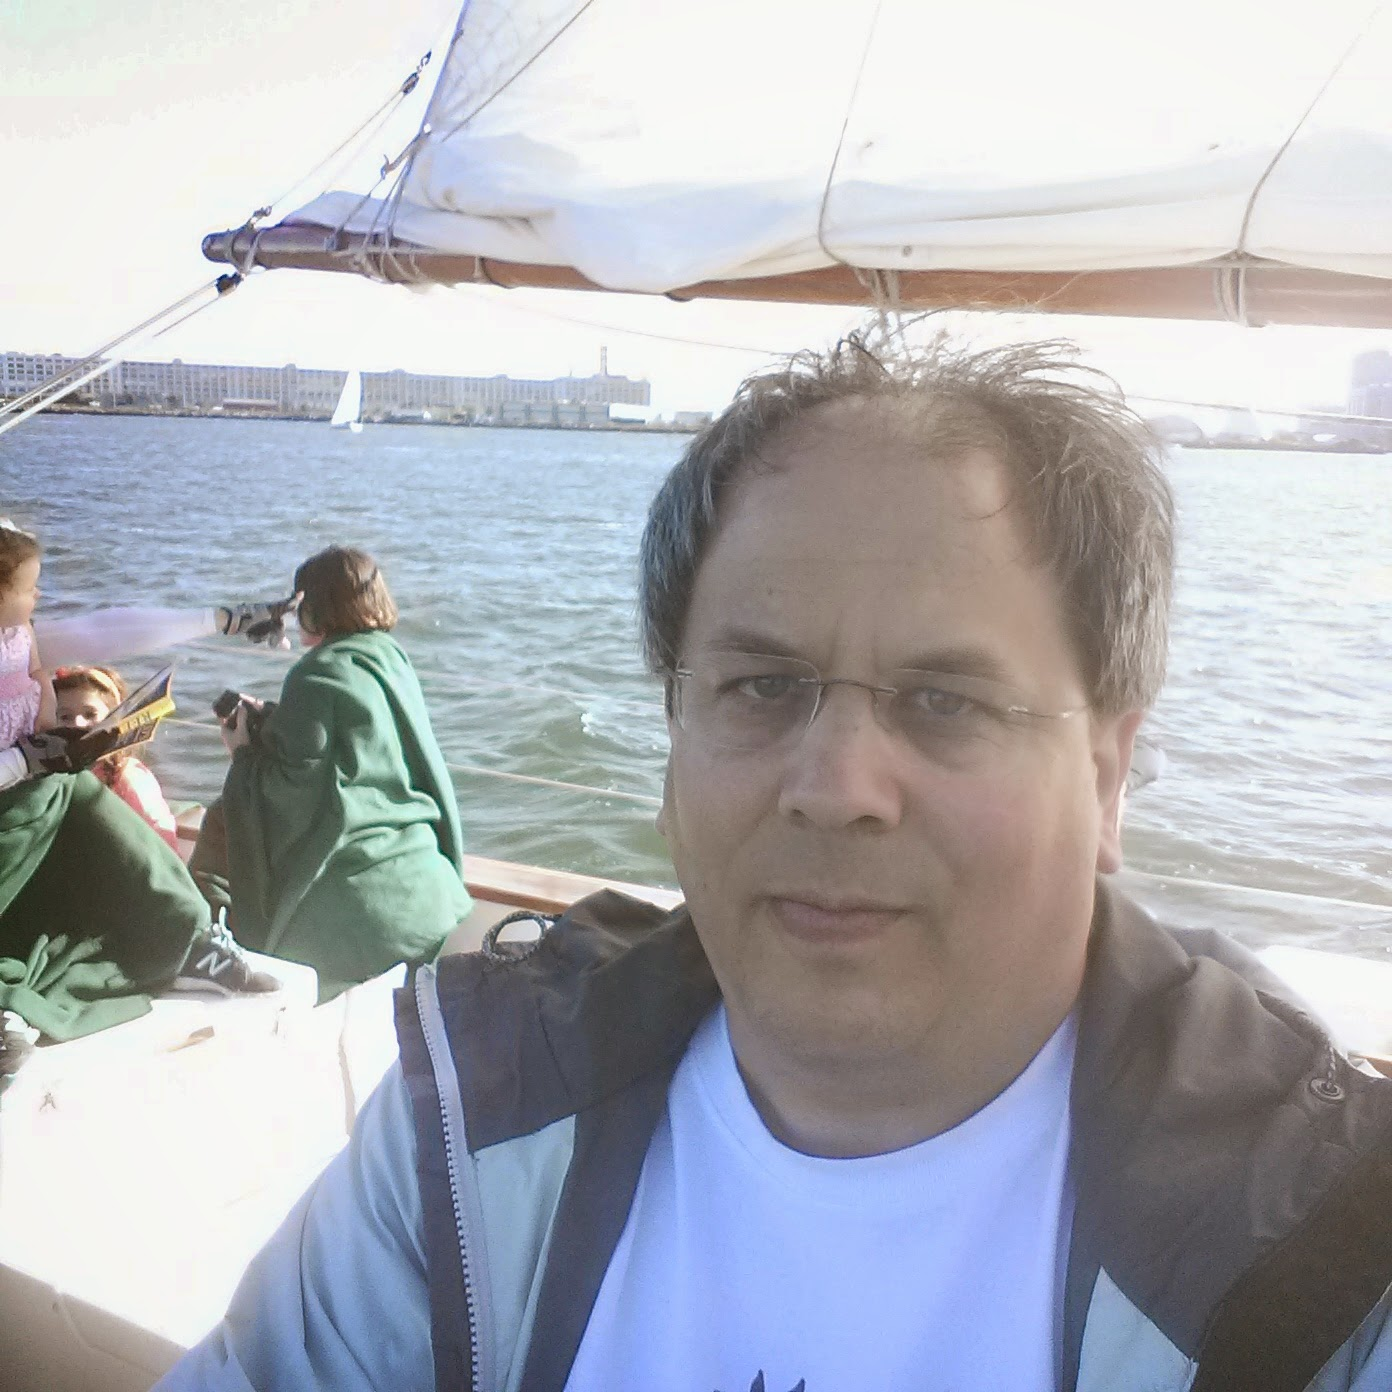 Sailing the Adirondack III in Boston